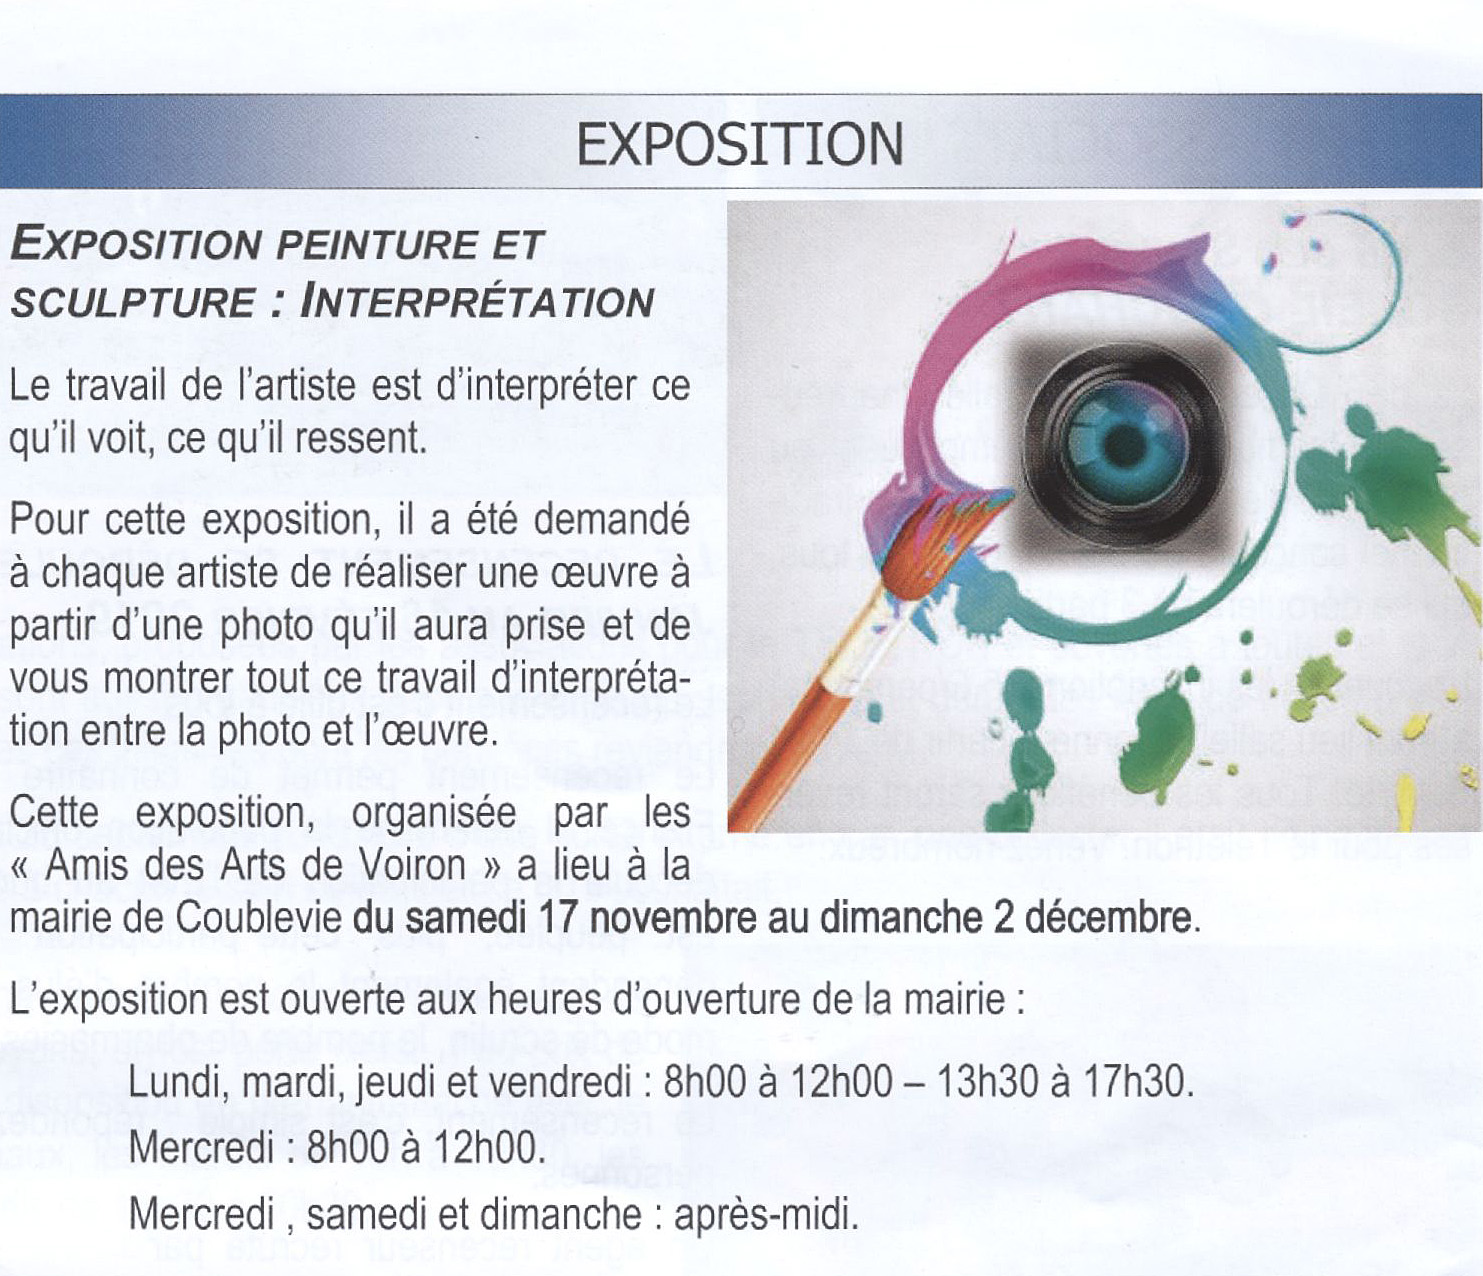 expo interprétation feuille locale